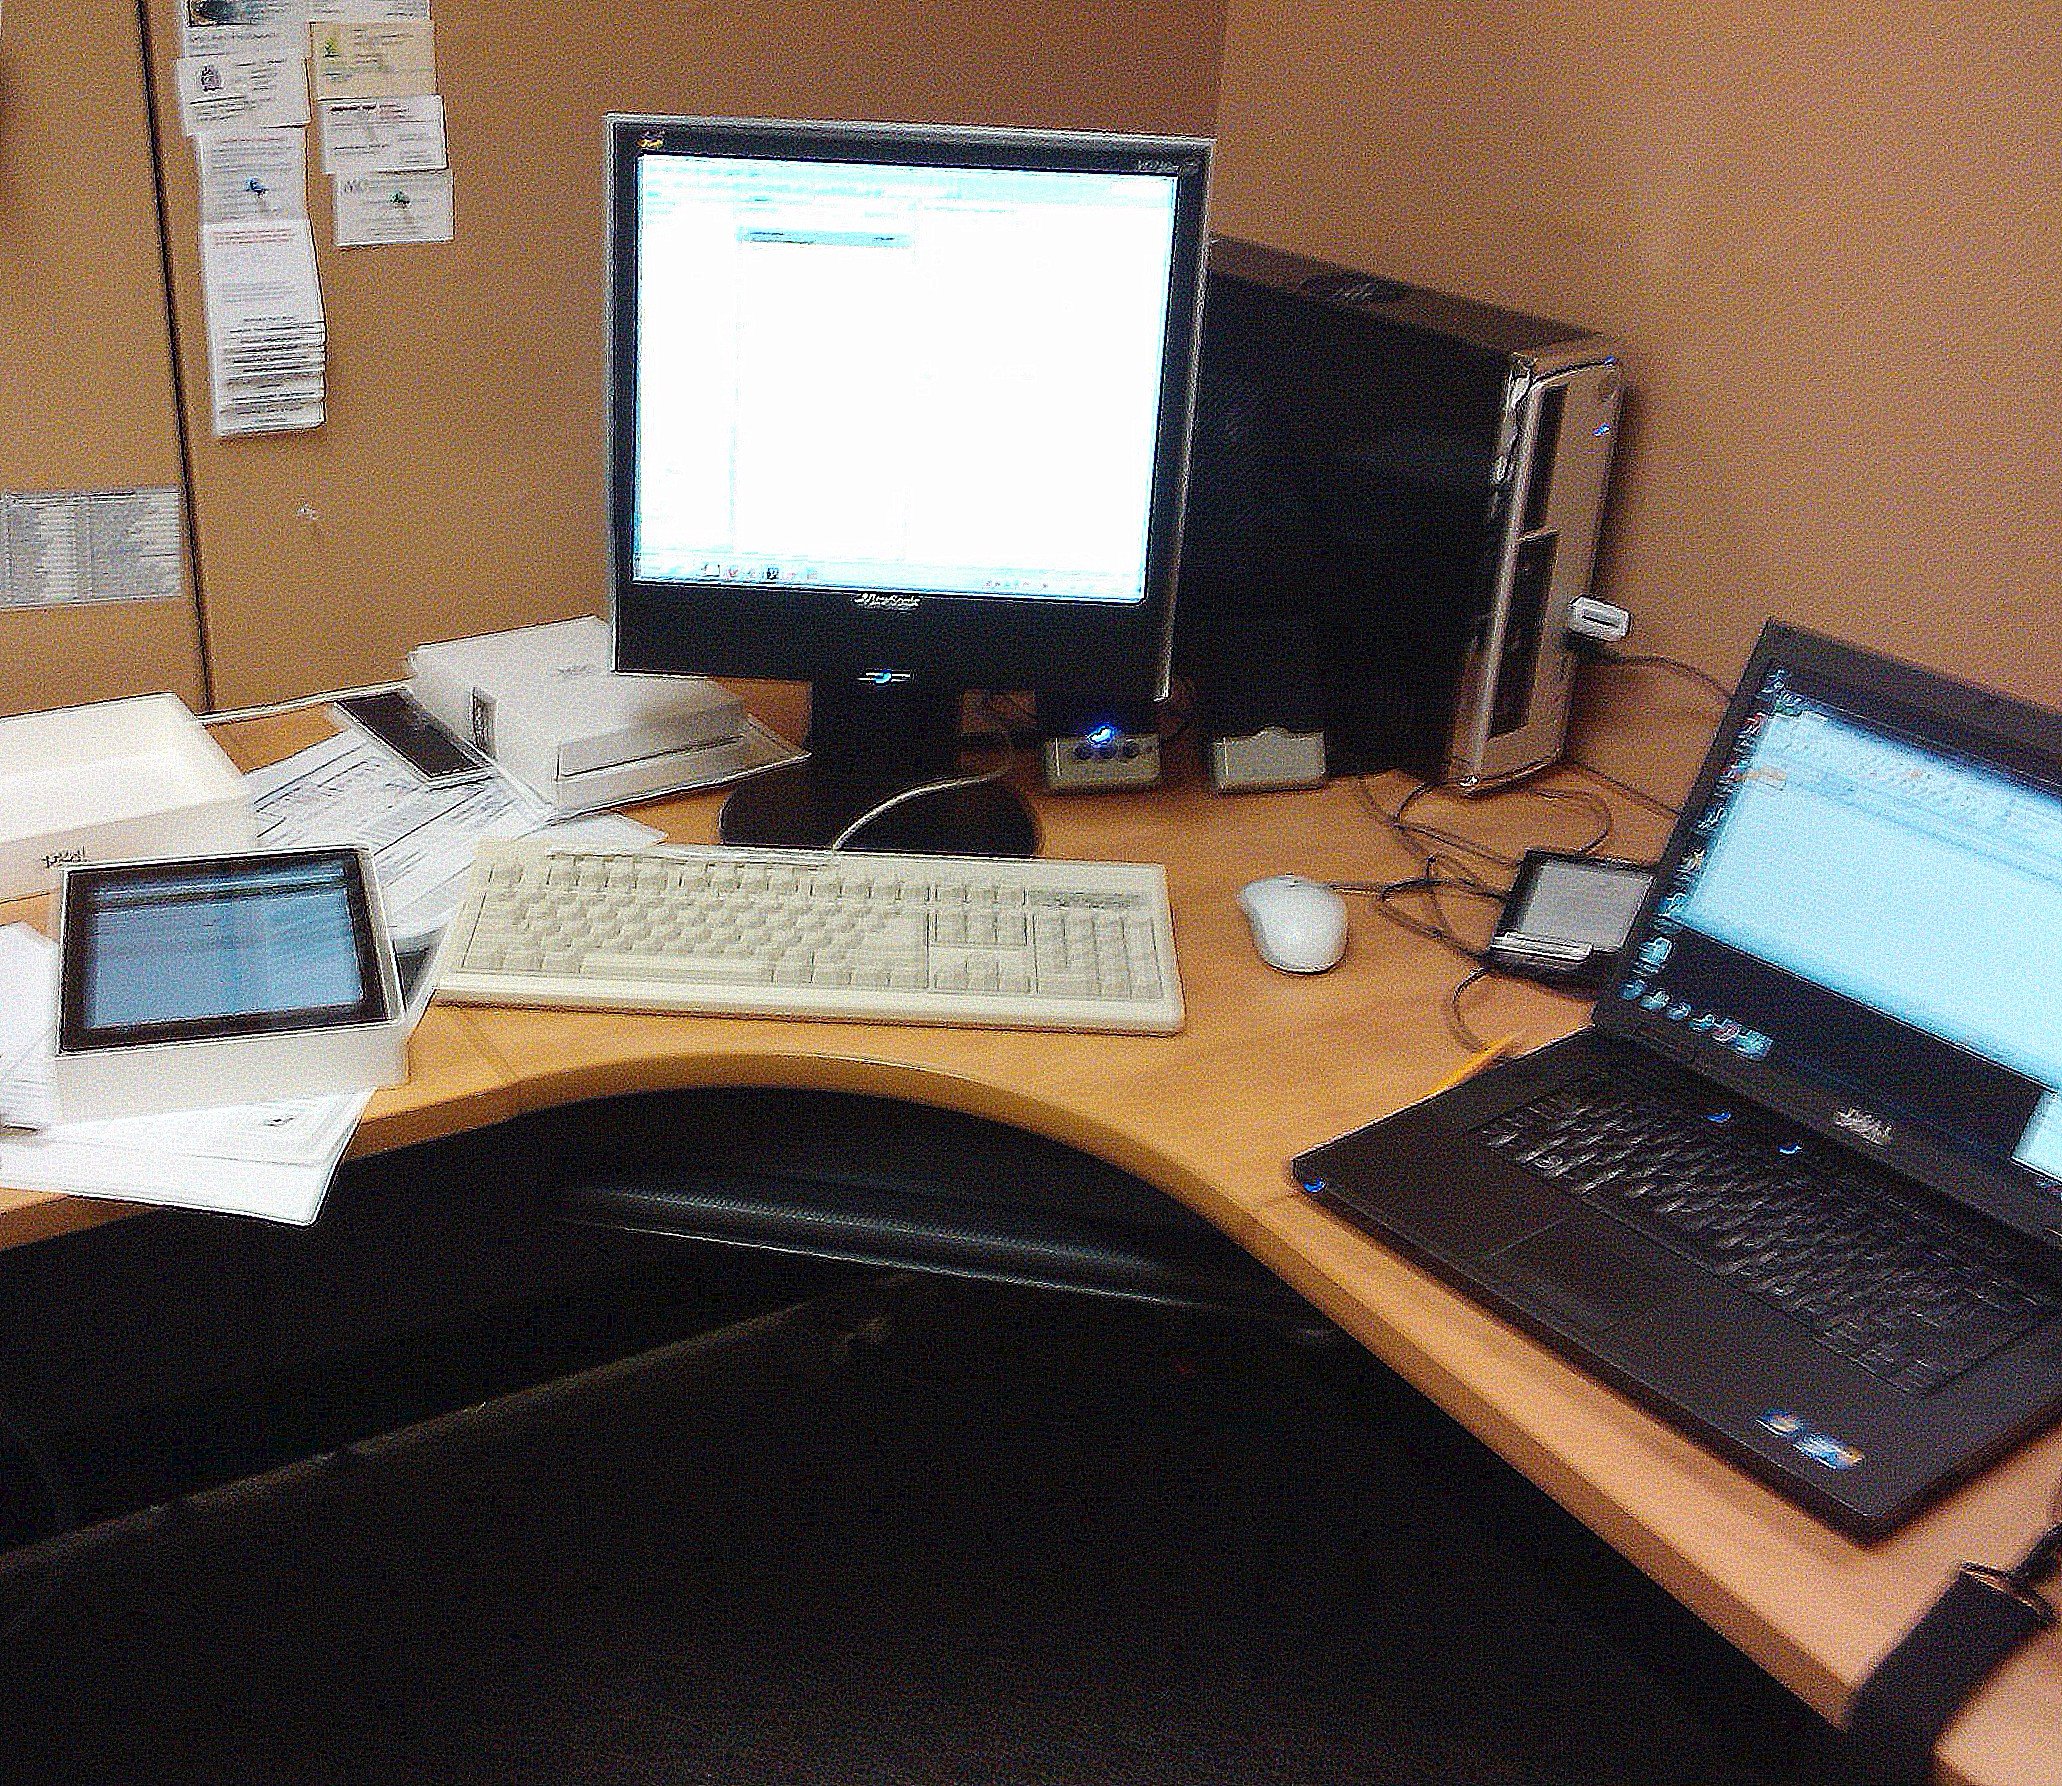 File:Digital services librarian desk.jpg - Wikimedia Commons